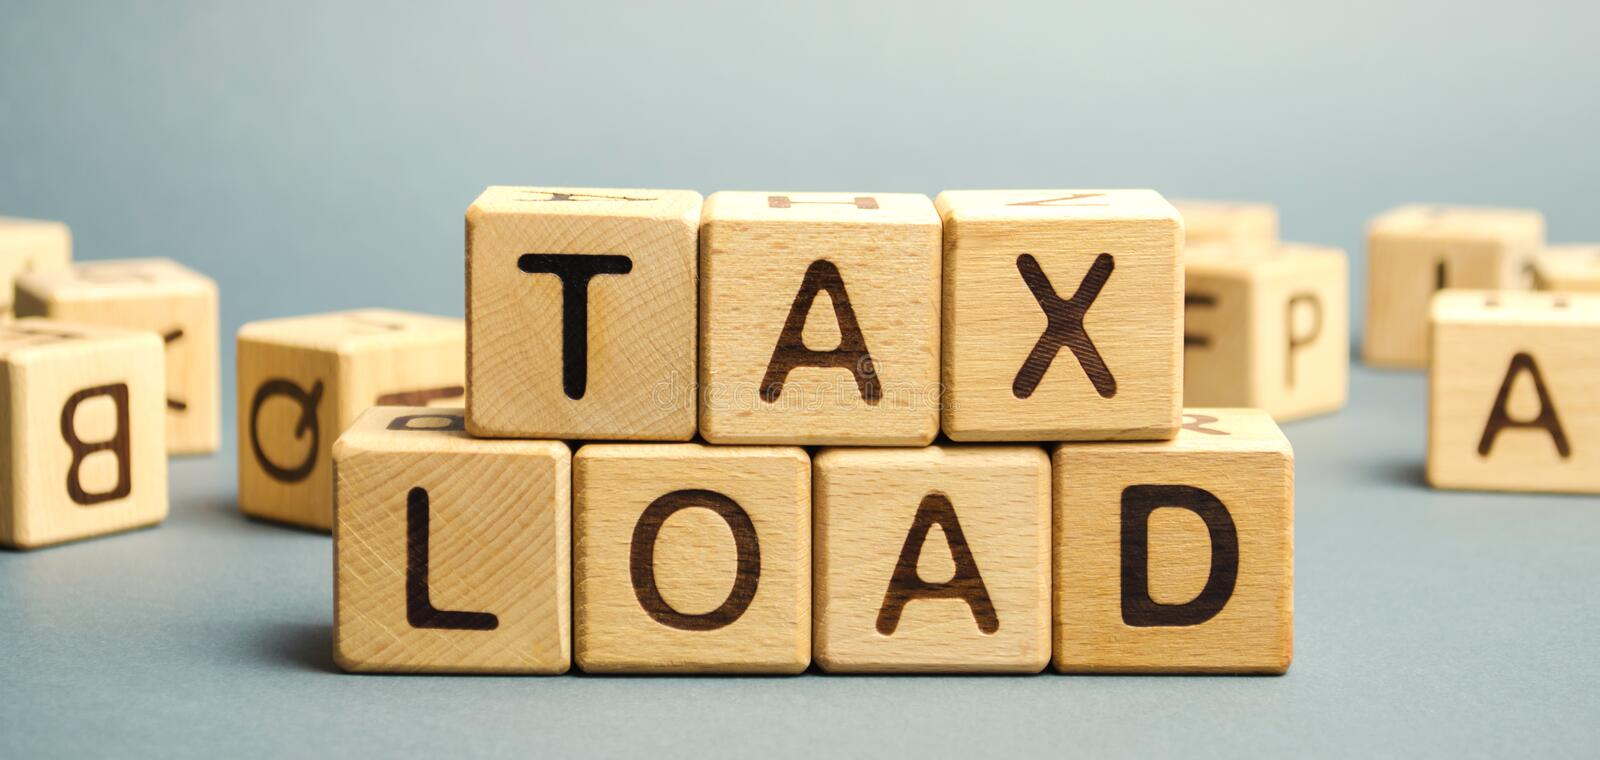 Wooden blocks with the word Tax load and randomly scattered cubes. Measure of the tax burden imposed by government. Taxation. Taxes. Business and finance royalty free stock image